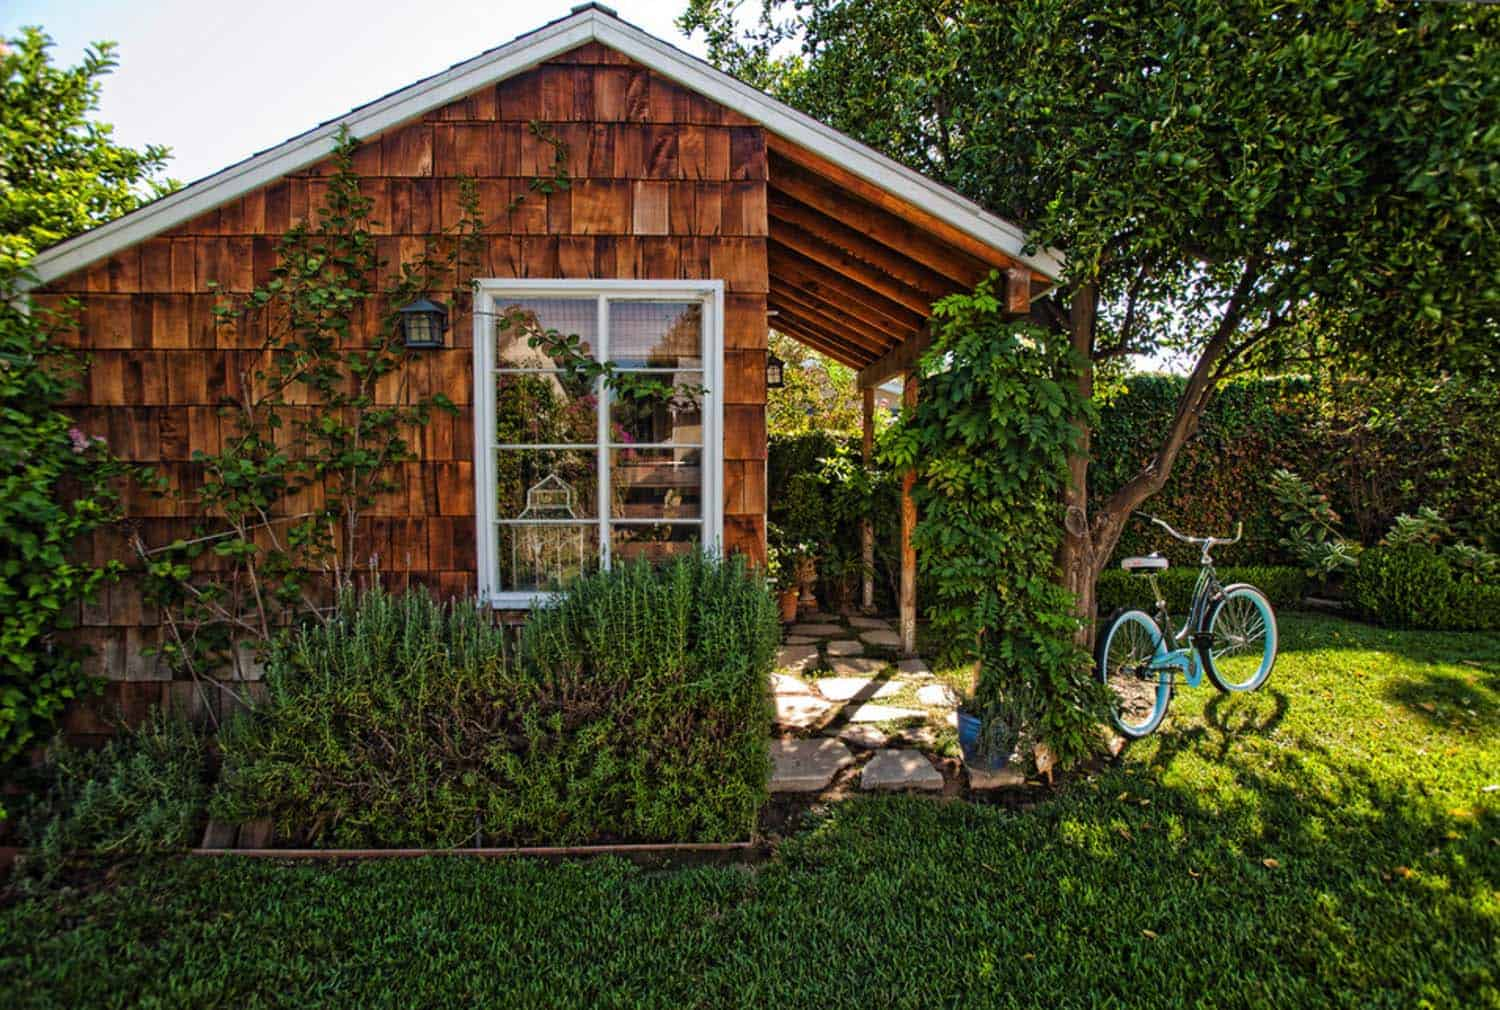 Garden Shed Ideas-24-1 Kindesign